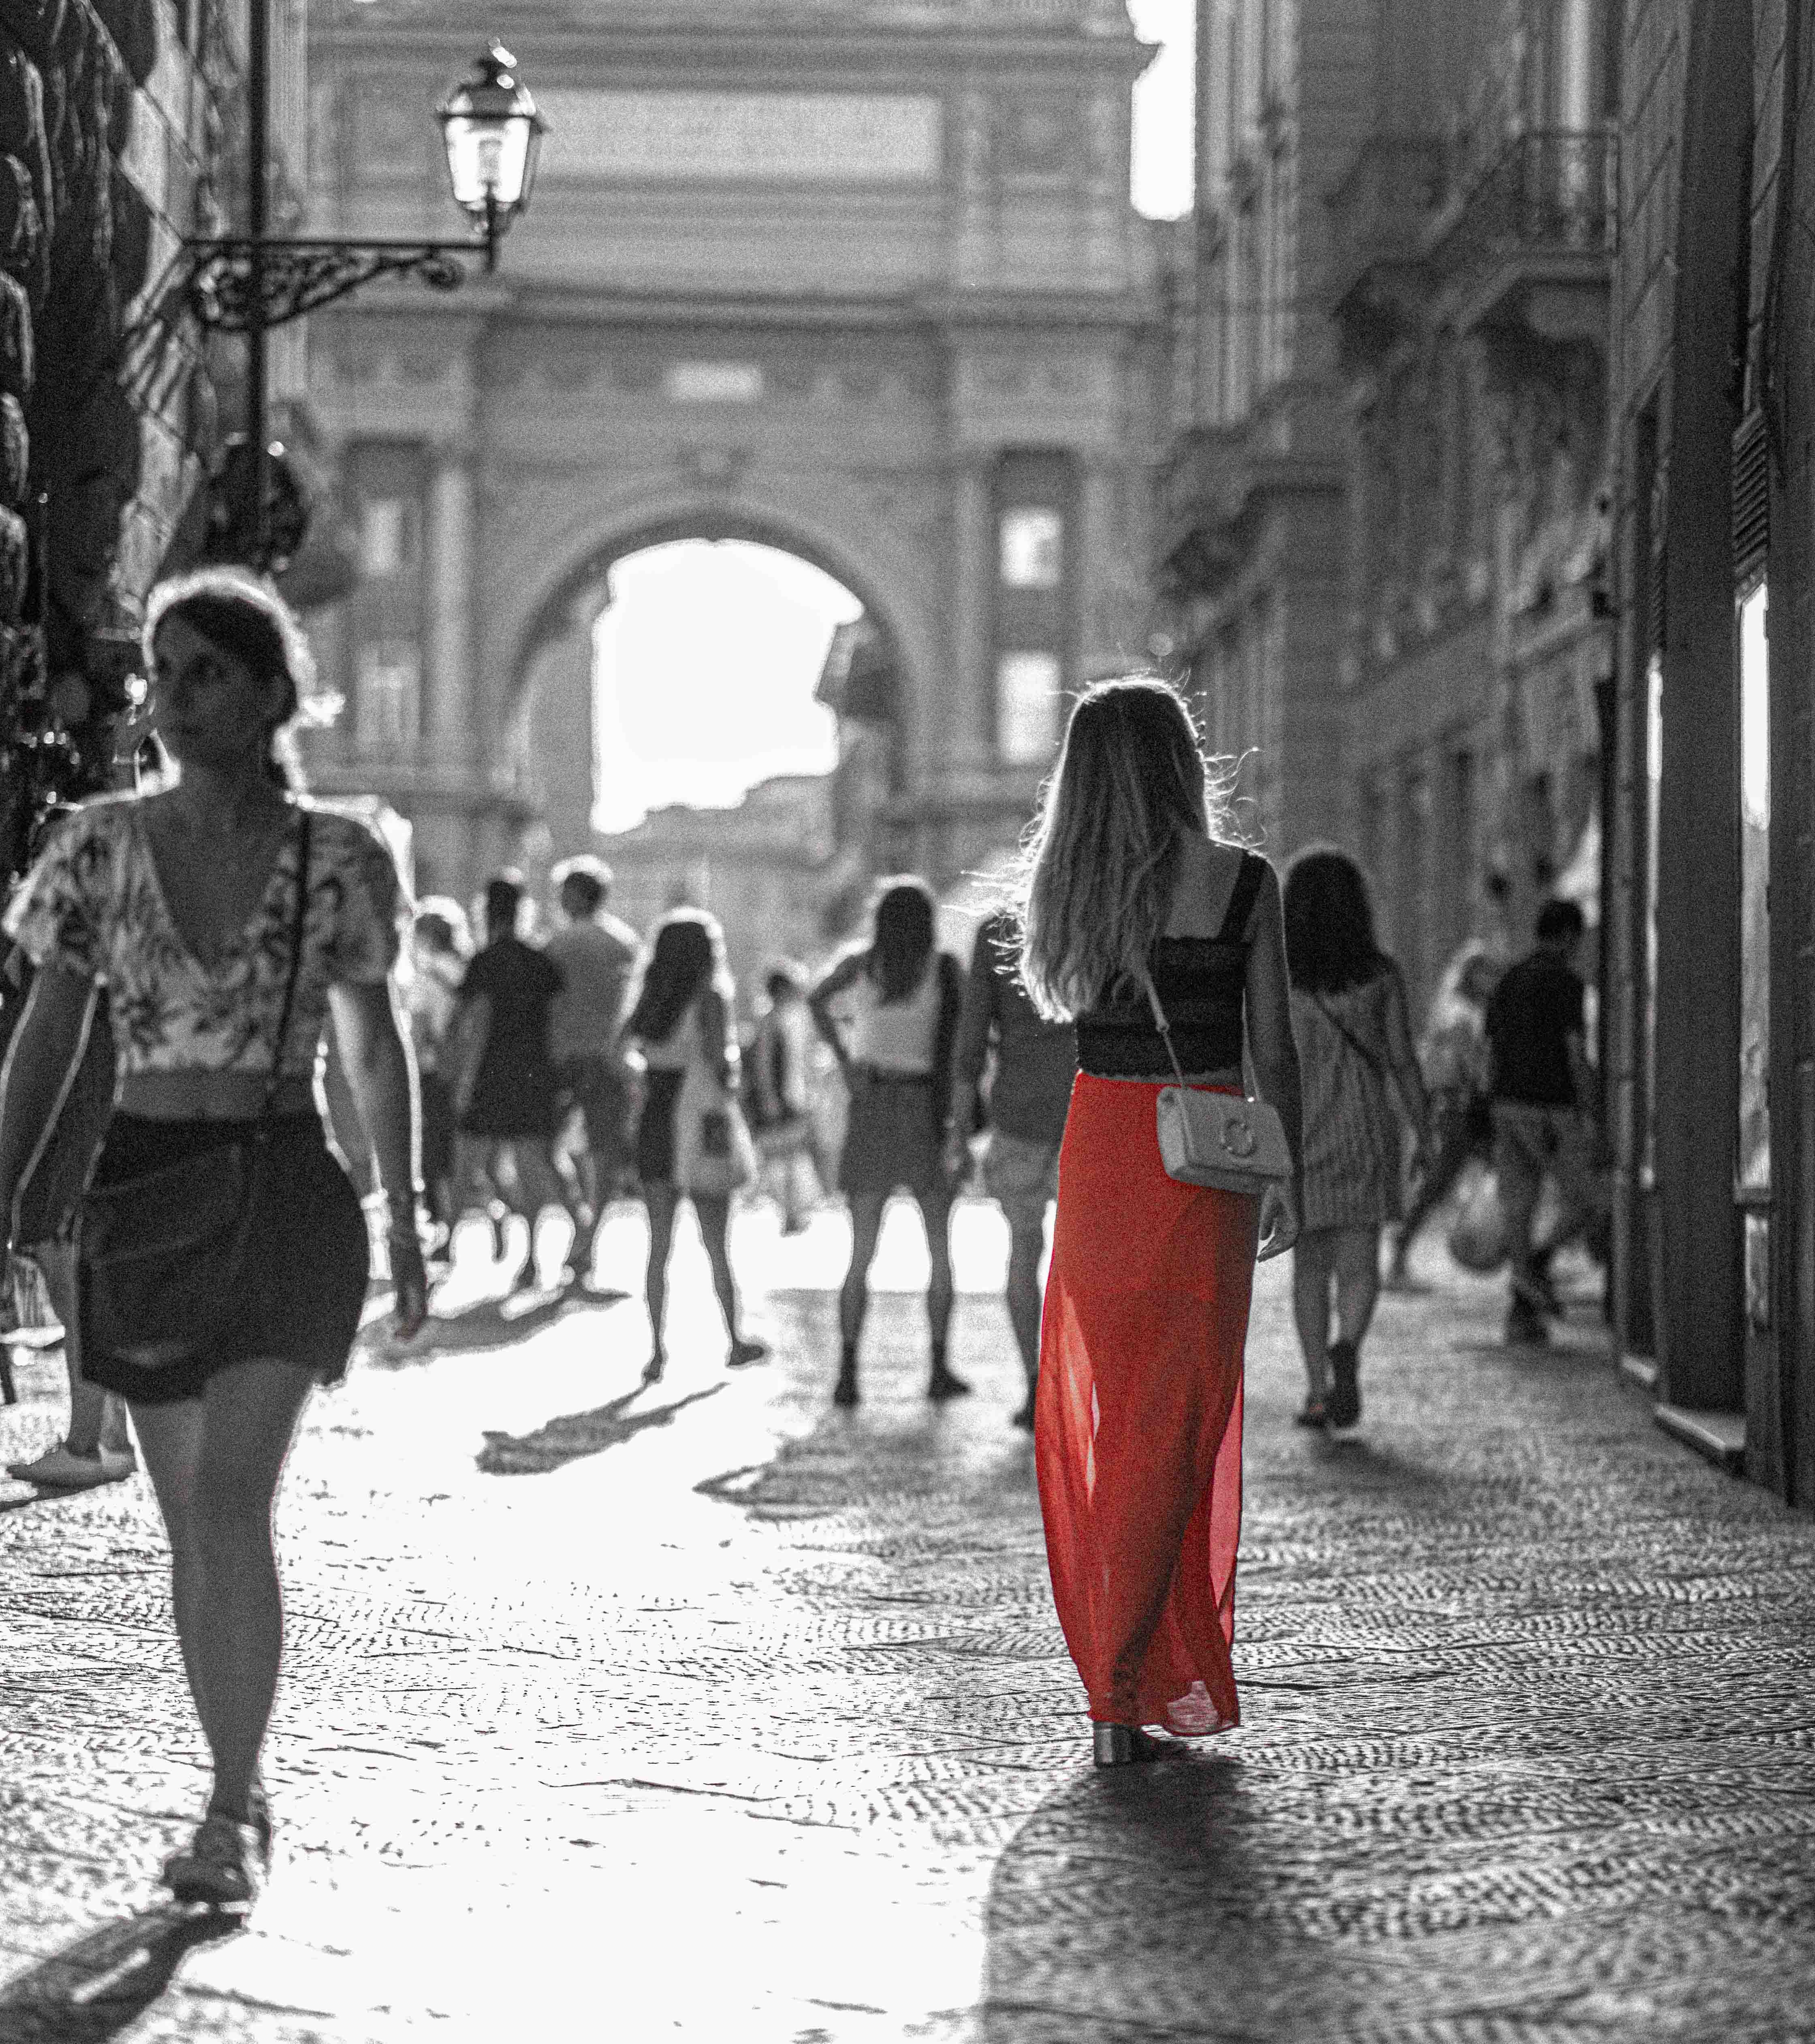 Travel ☼ Italy ☼ Models